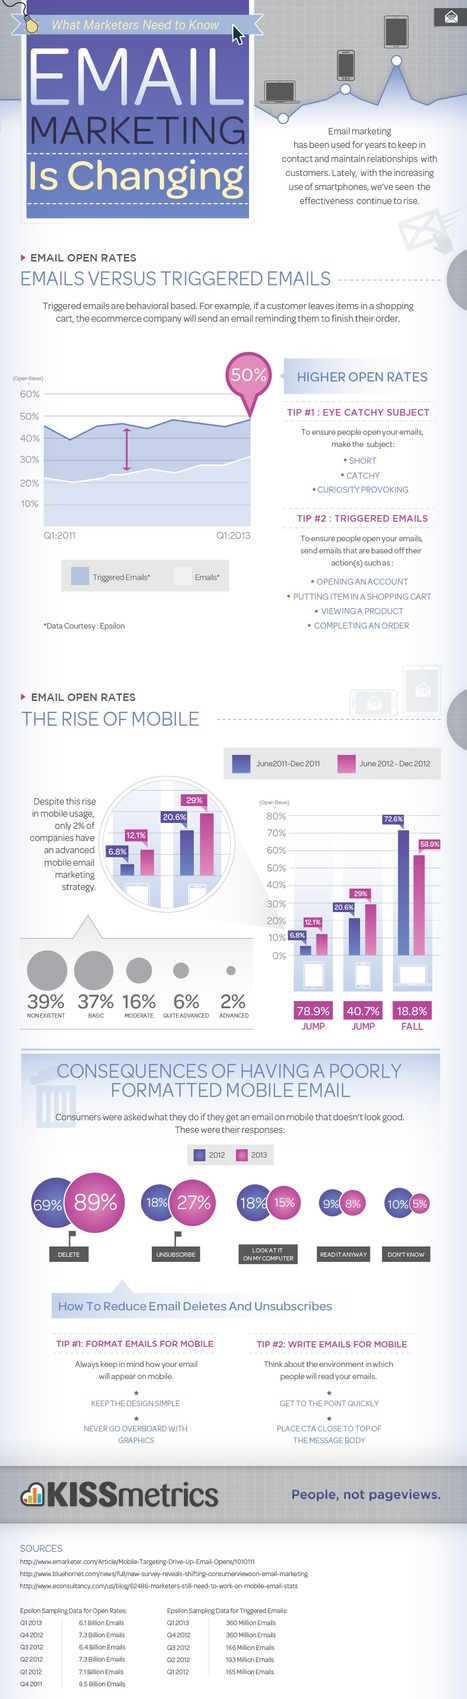 Email Marketing is Changing – The Rise of Mobile and Triggered Emails | KISSmetrics Infographic | #TheMarketingAutomationAlert | Digital On Your Hands | Scoop.it